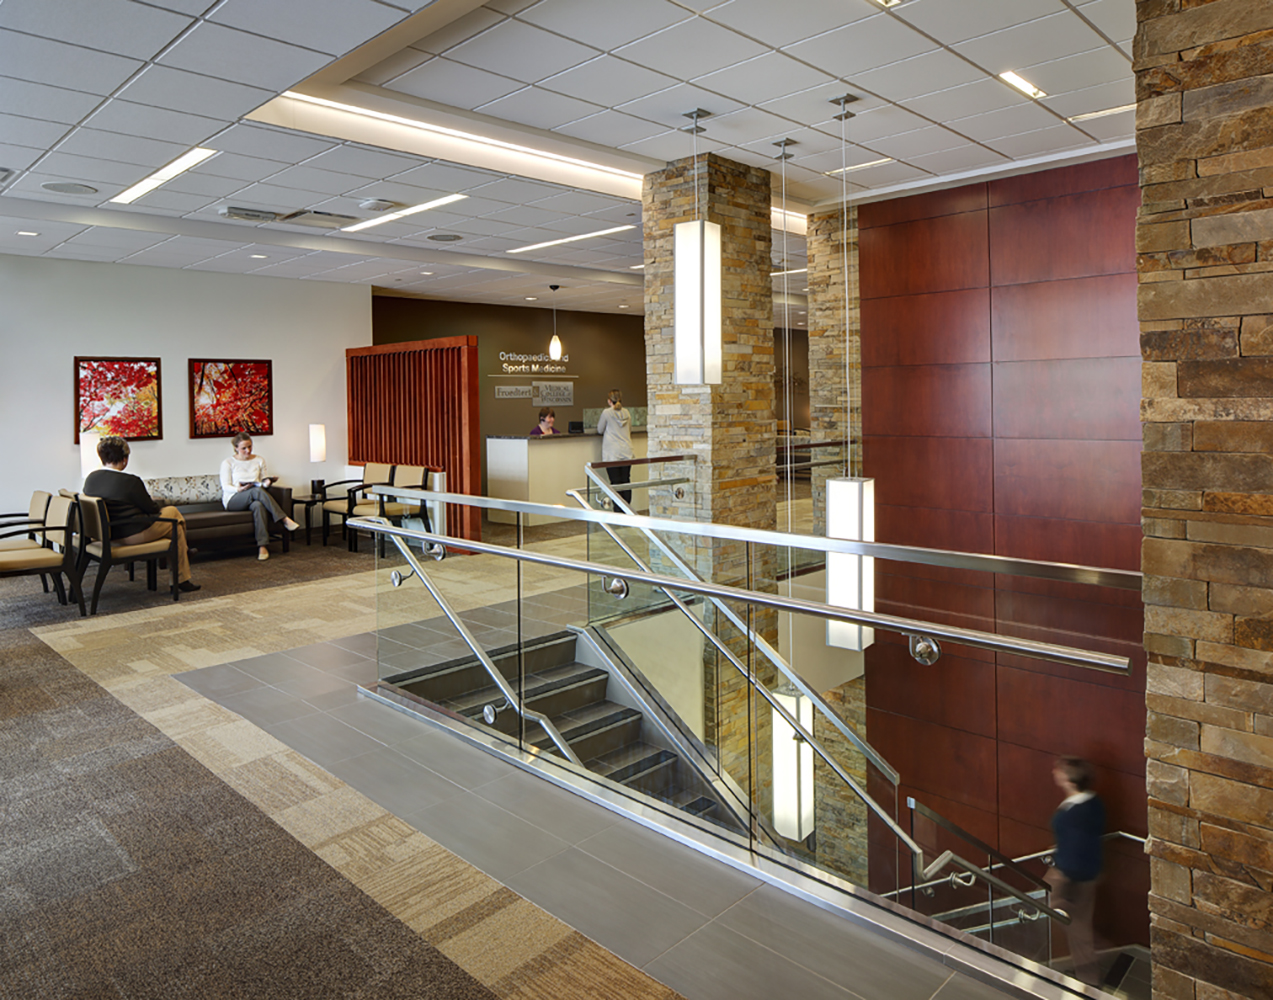 Parallel pendants in a hospital lighting application above a modern open stairwell near a cozy waiting area.